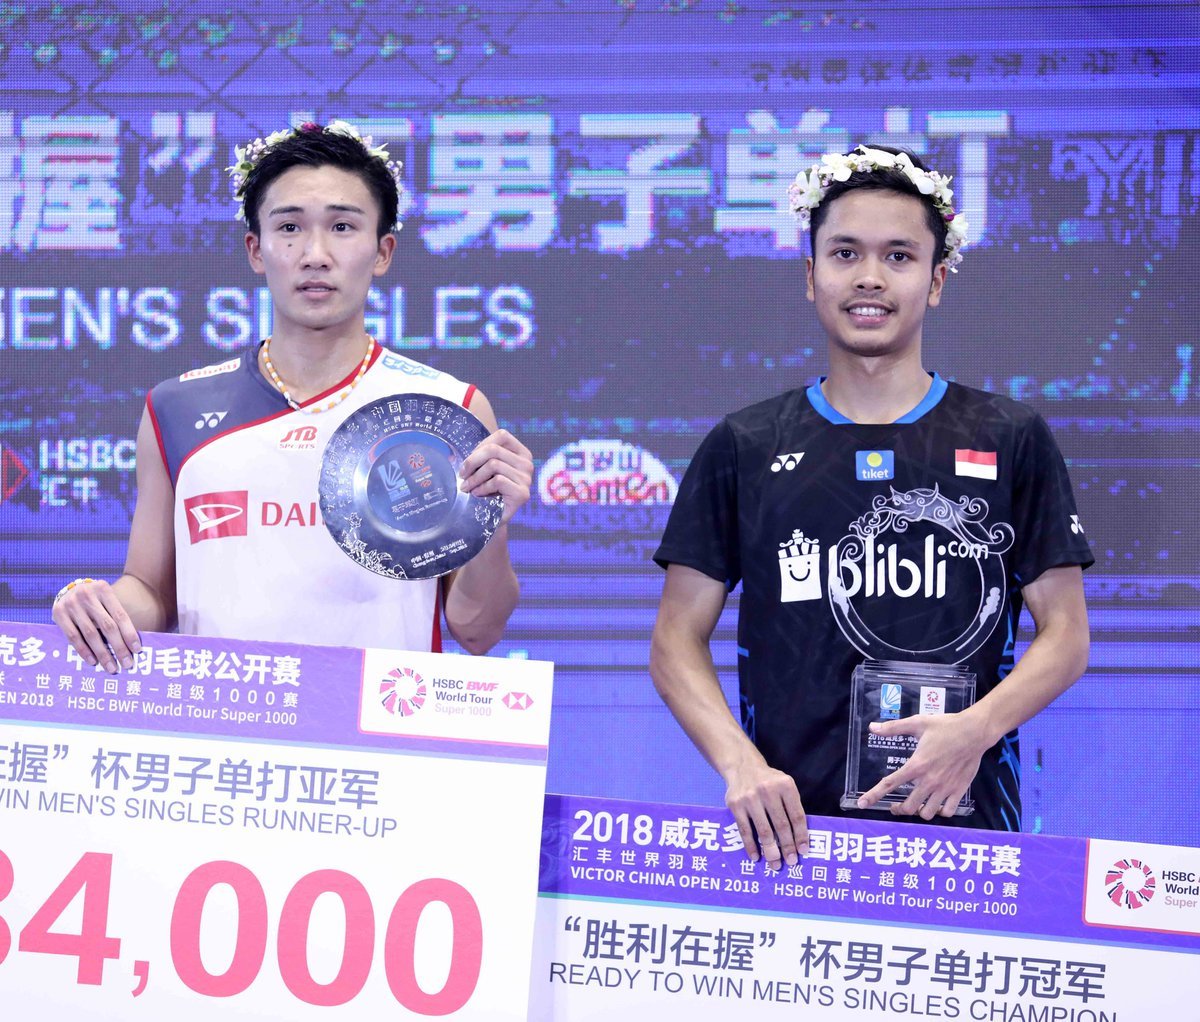 Anthony Sinisuka Ginting dan Kento Momota, juara dan runner-up China Open 2018.